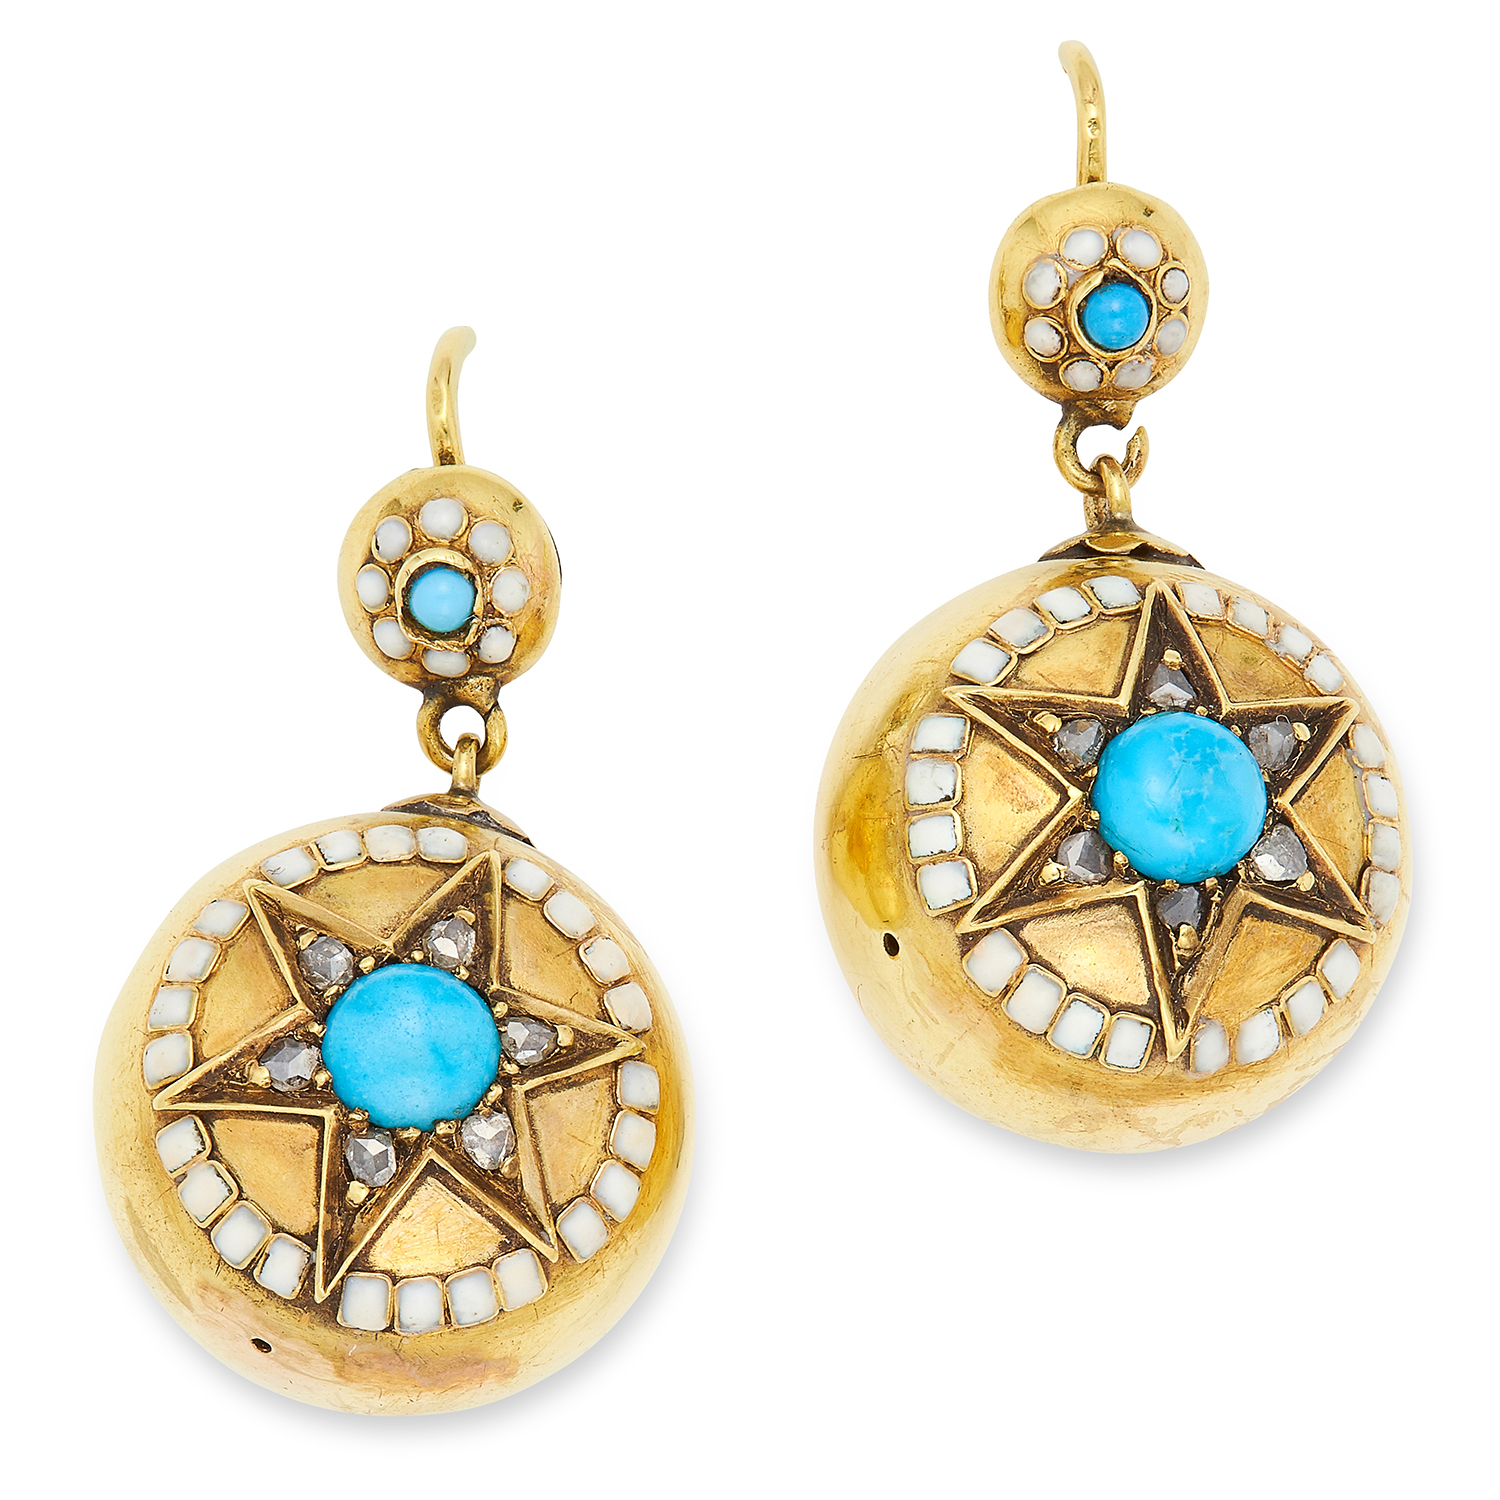 Los 7 - ANTIQUE TURQUOISE, ENAMEL AND DIAMOND EARRINGS, set with cabochon turquoise, white enamel and